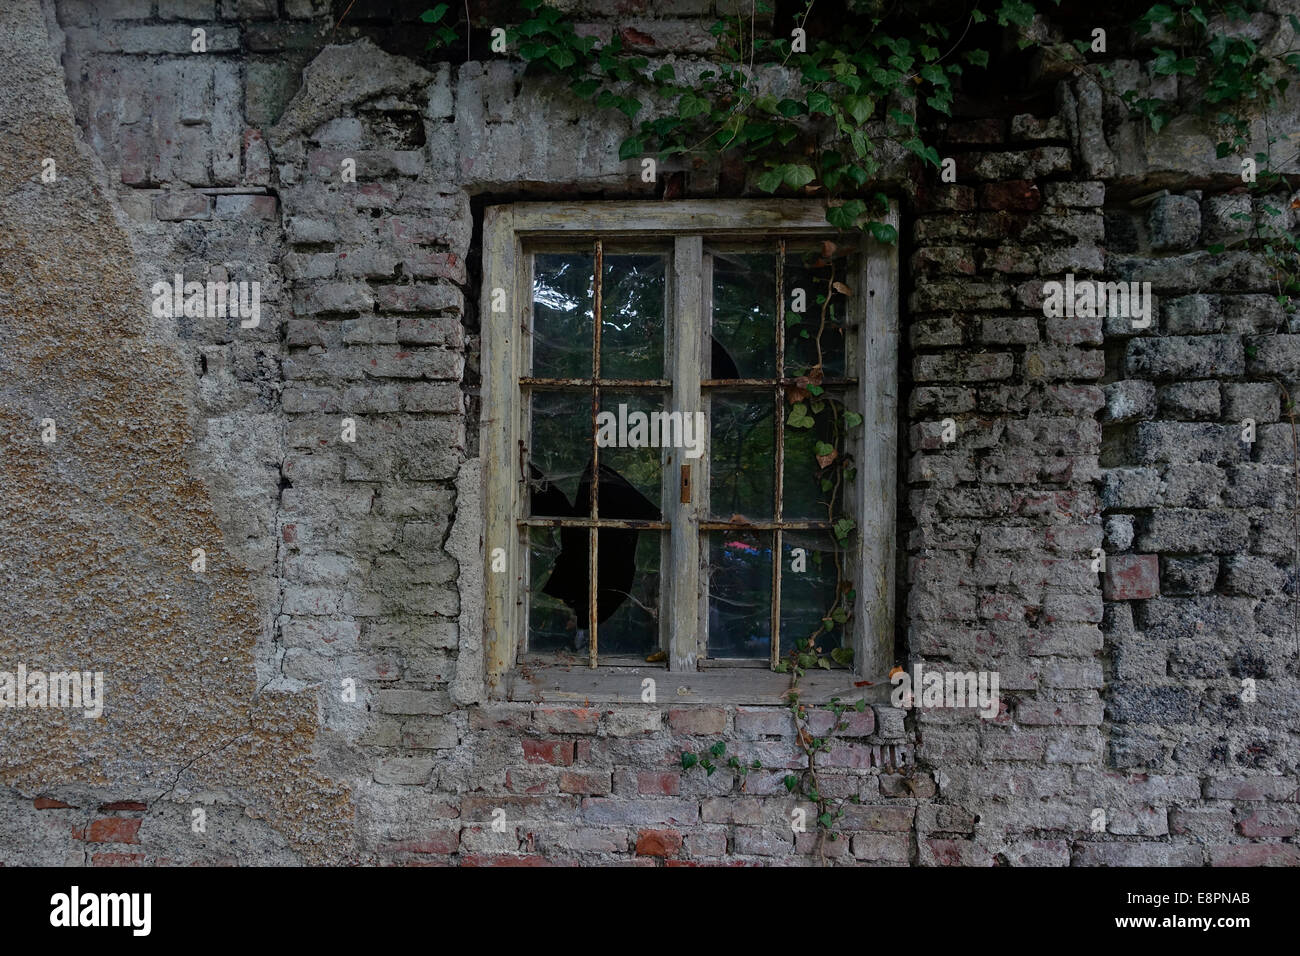 Window in a derelict brick wall of an old house - Stock Image